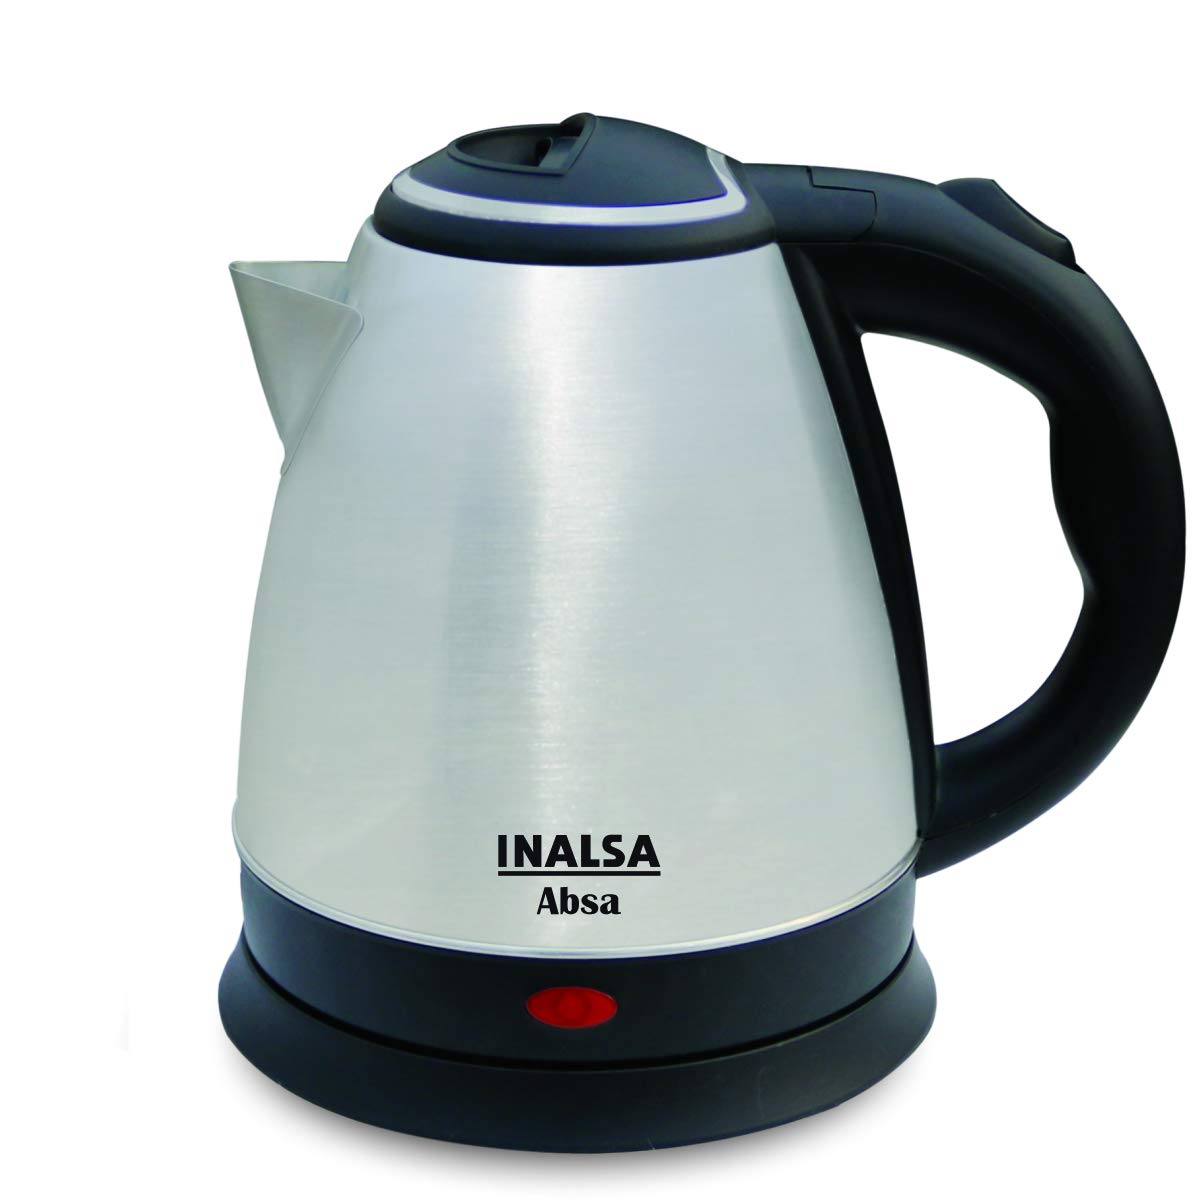 Inalsa 1.5 L Electric Kettle Absa